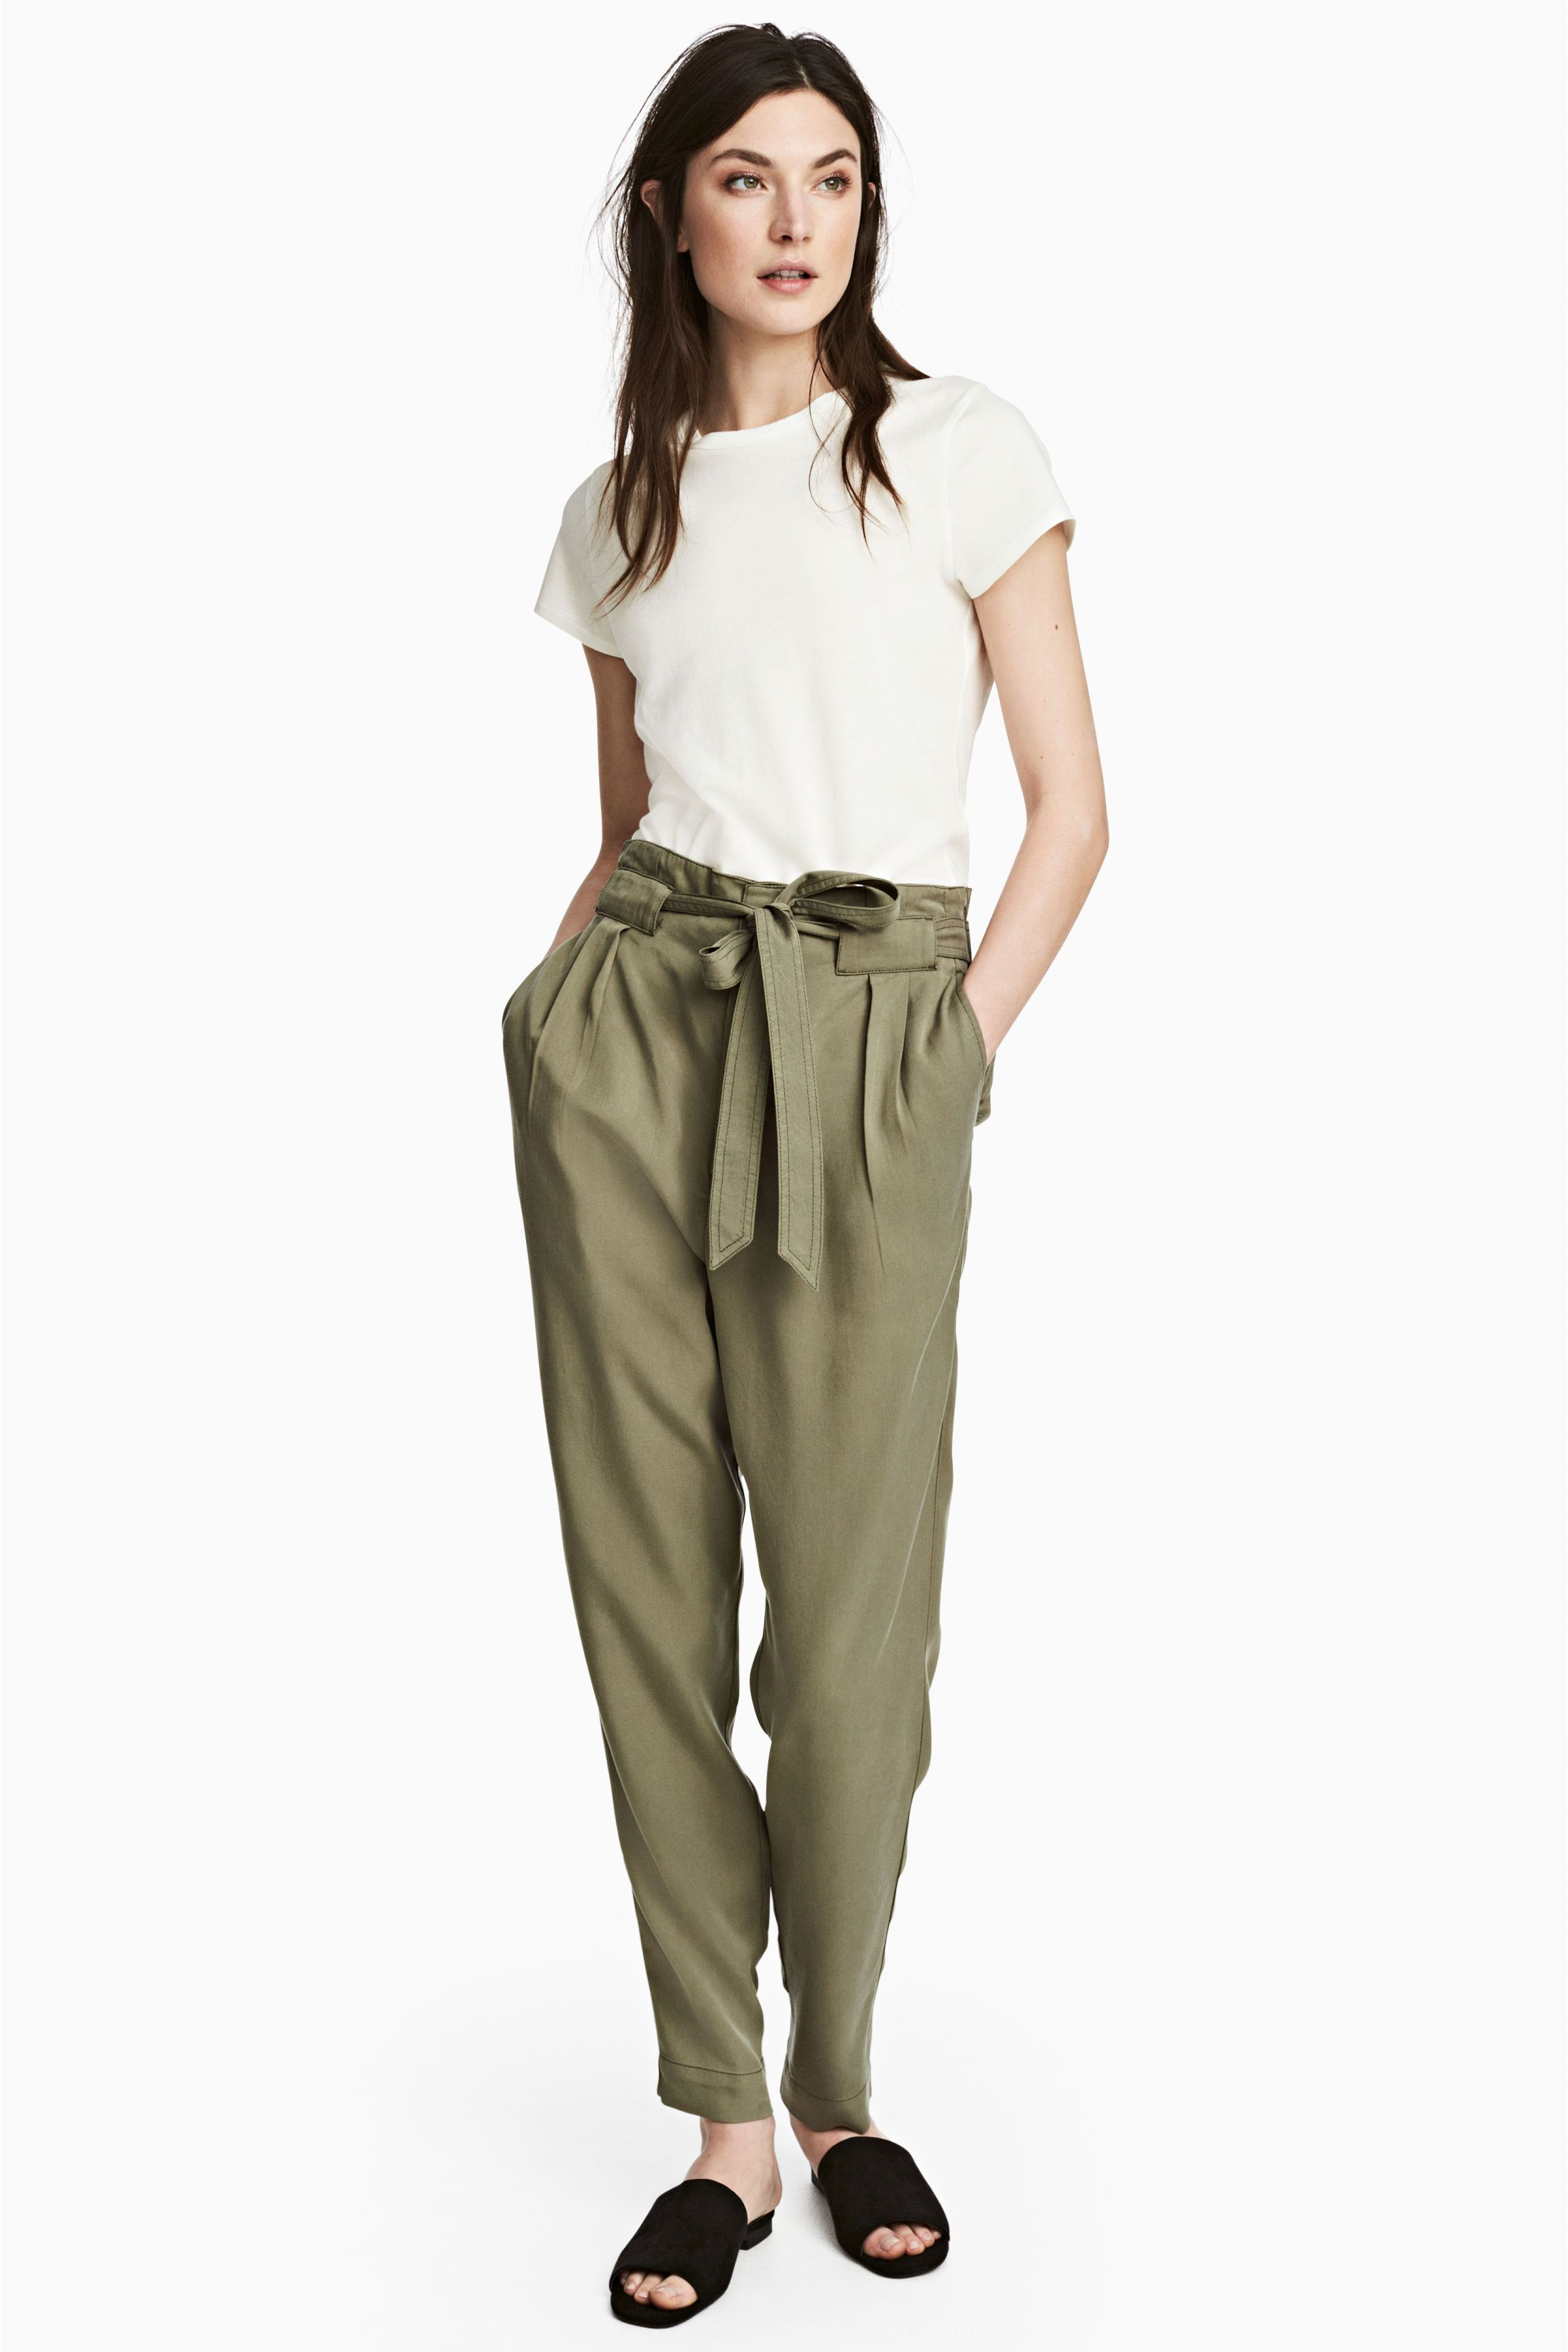 Olive paper bag waist pants trousers, white t-shirt, black slide sandals 23146d909f0